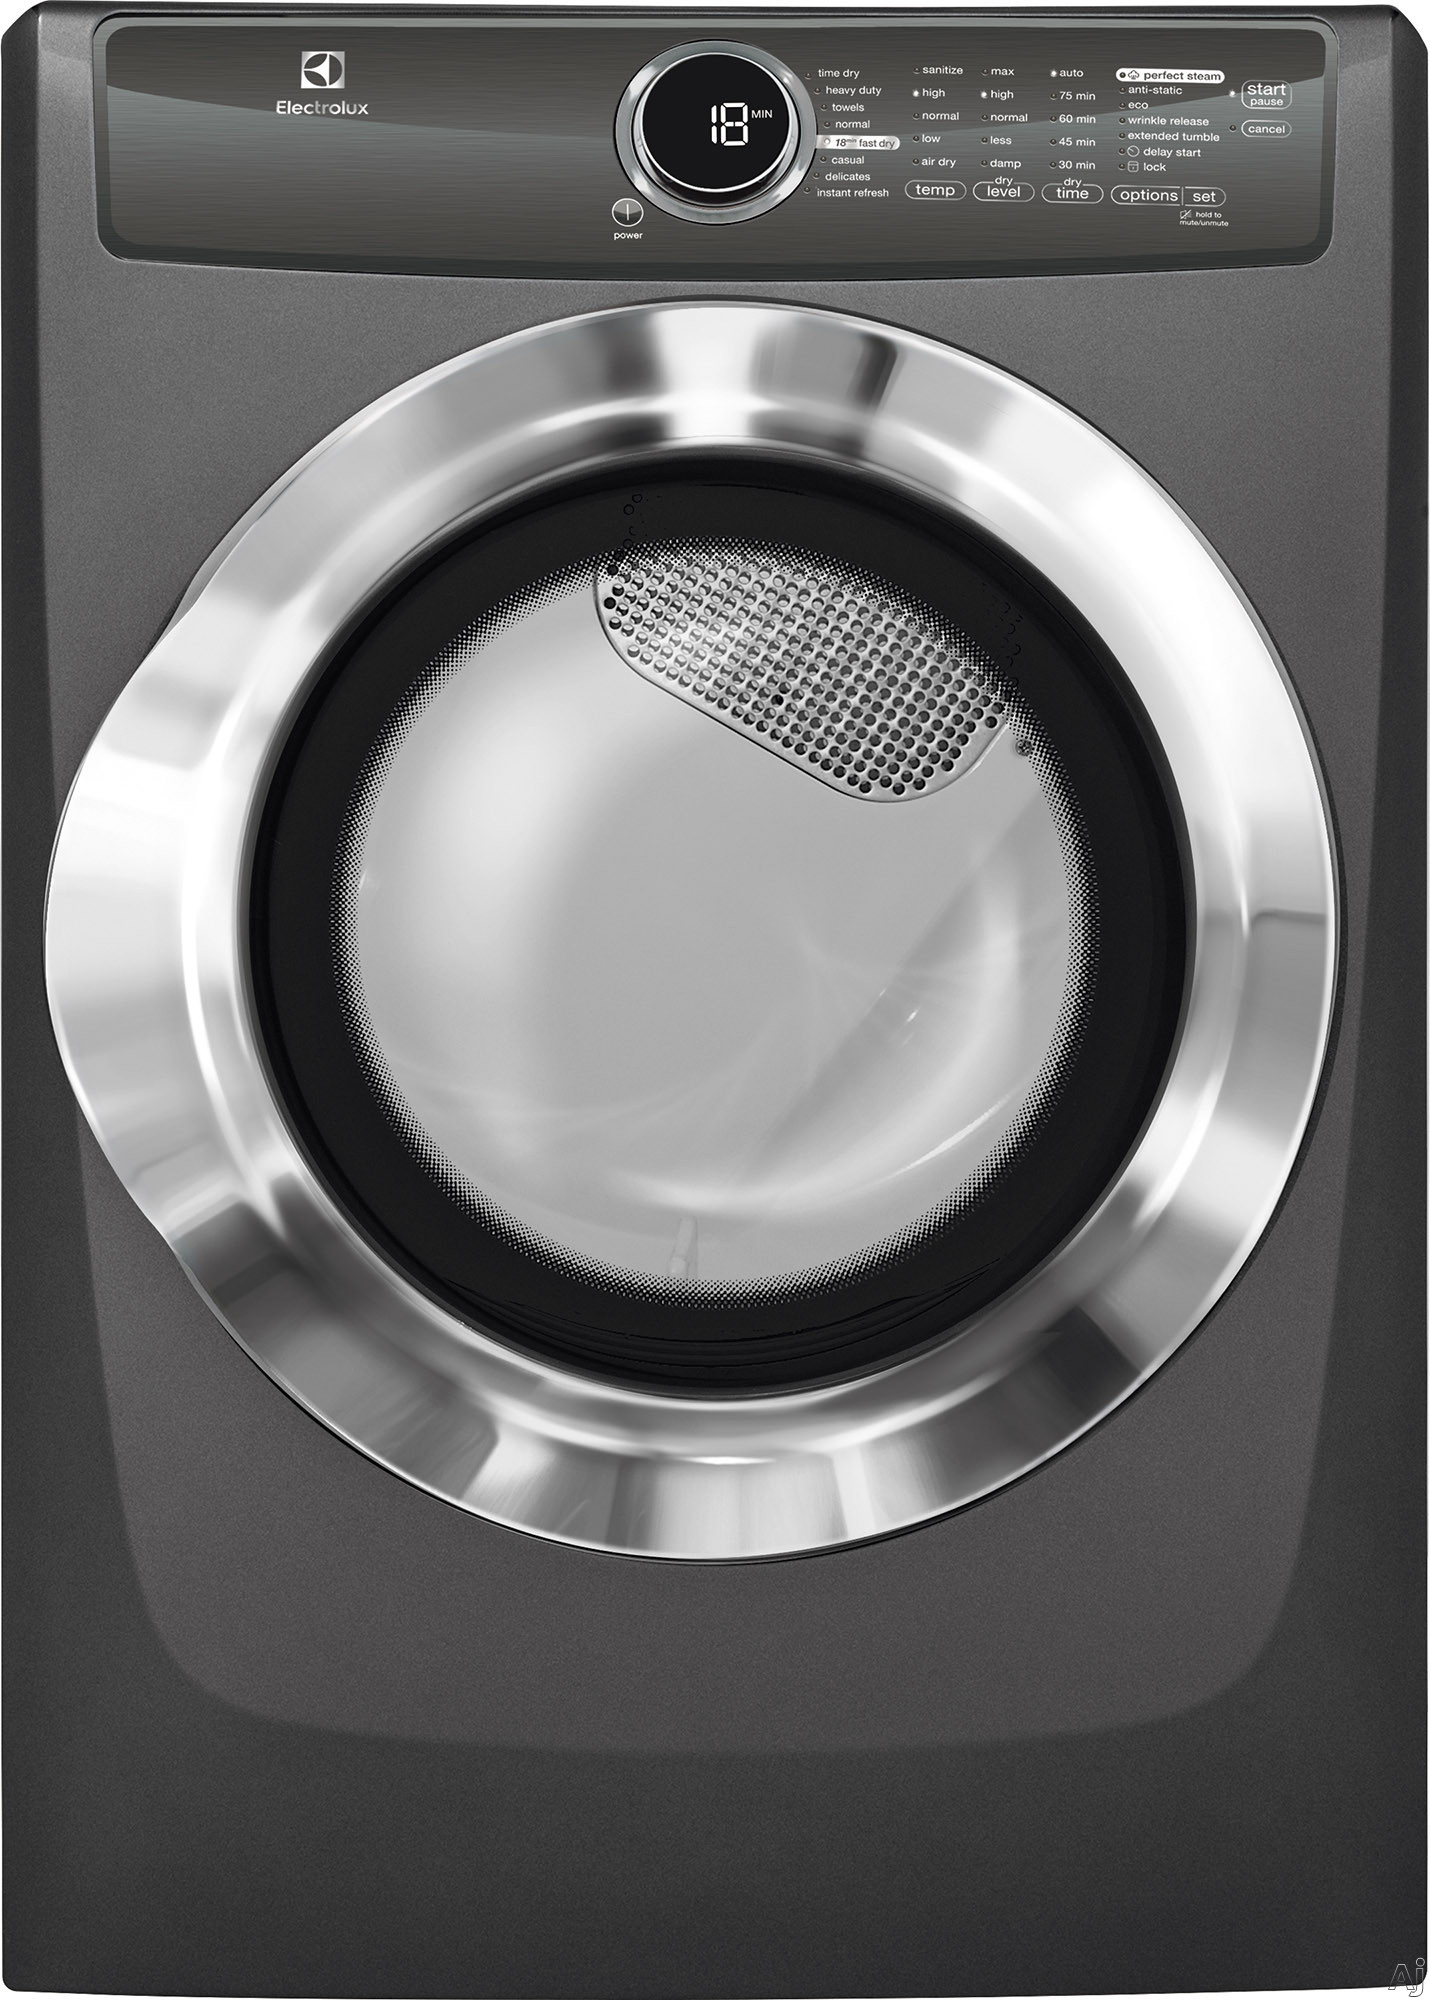 Electrolux Laundry,Electrolux Dryers,Electrolux Electric Dryers